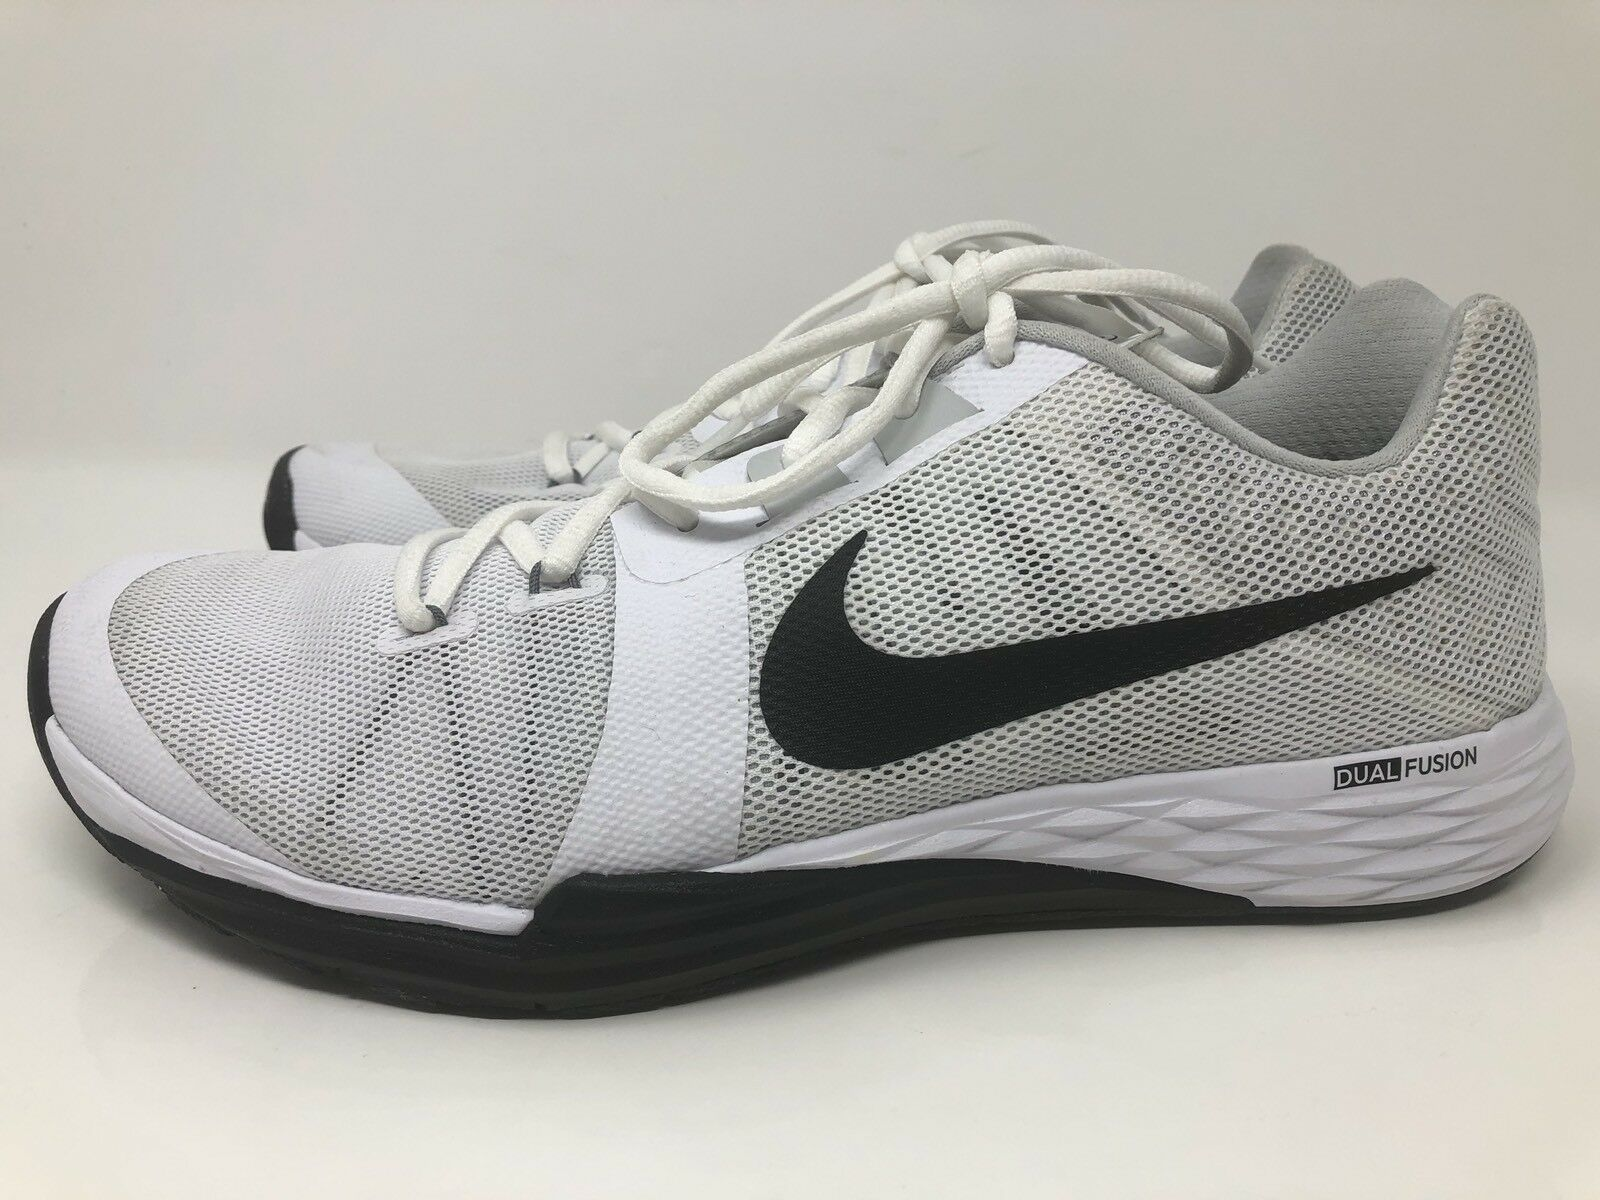 Wild casual shoes Nike Dual Fusion Run 3 White Black New Comfortable